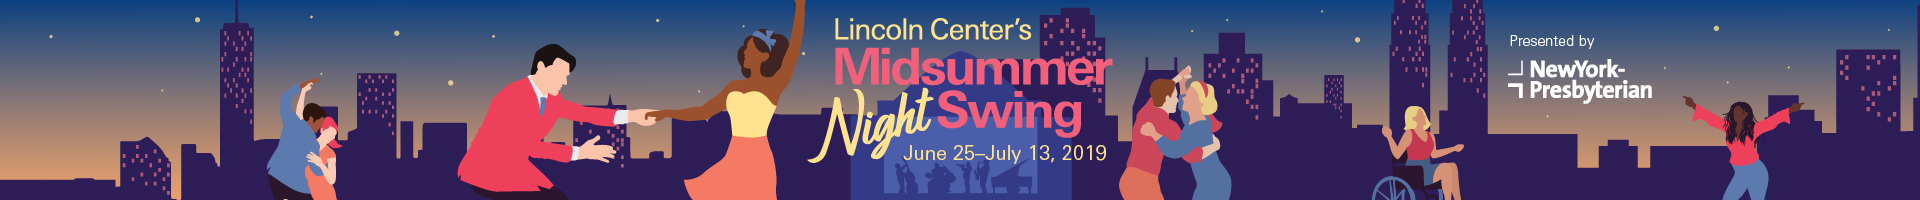 midsummer-night-swing